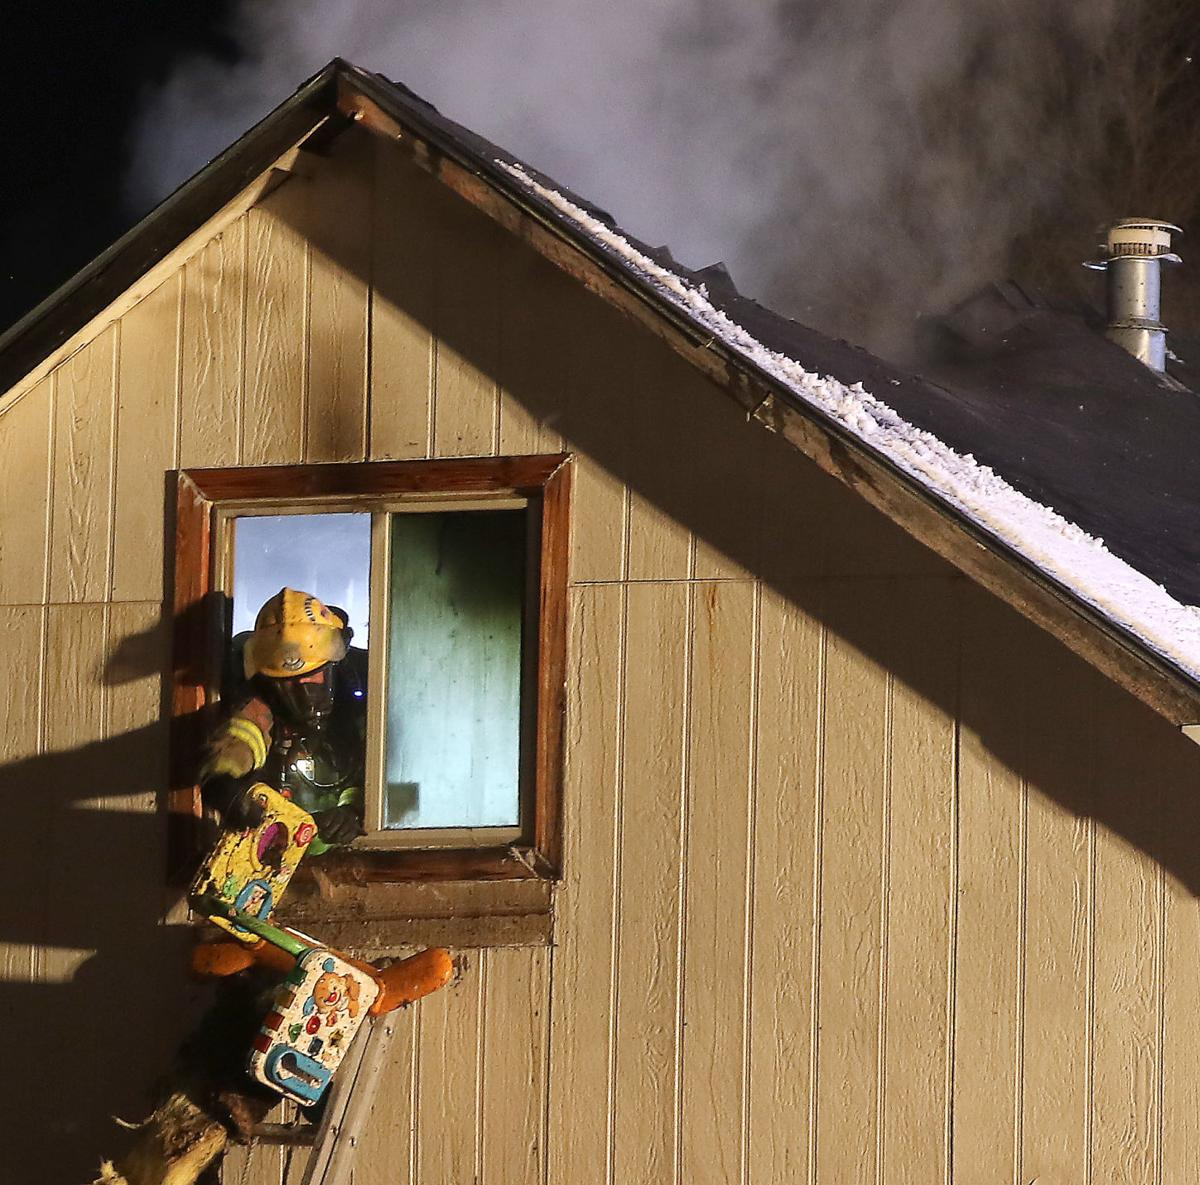 Family of five displaced in Gering fire; space heater cited as cause